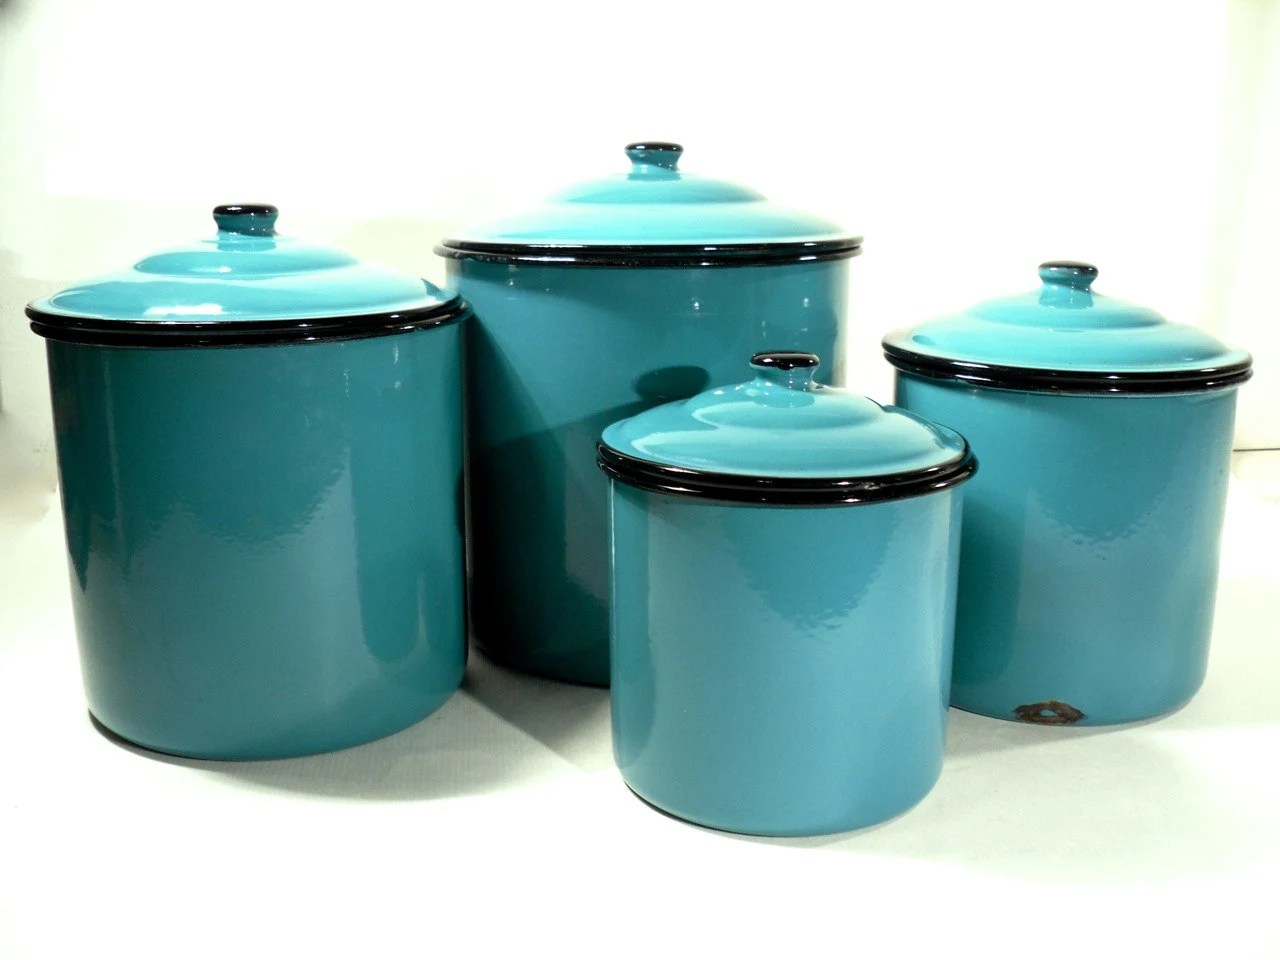 Storage Canisters For Kitchen - Listitdallas